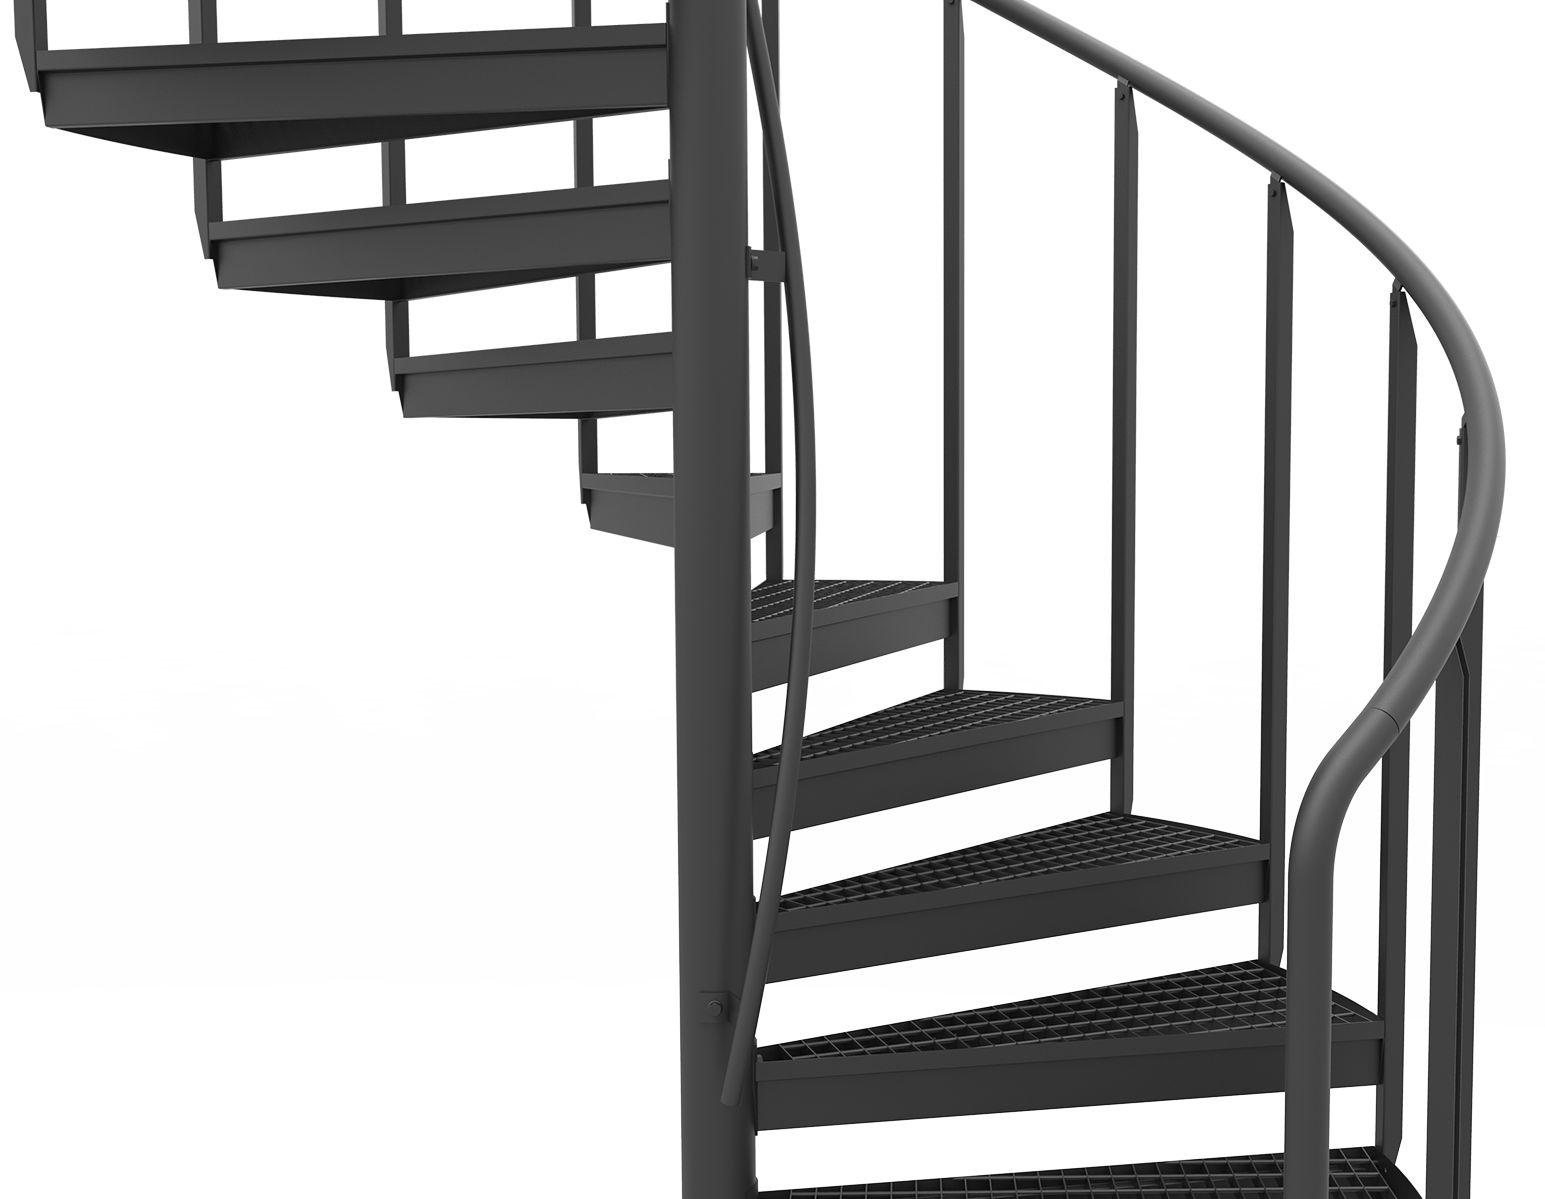 handrail on center tube